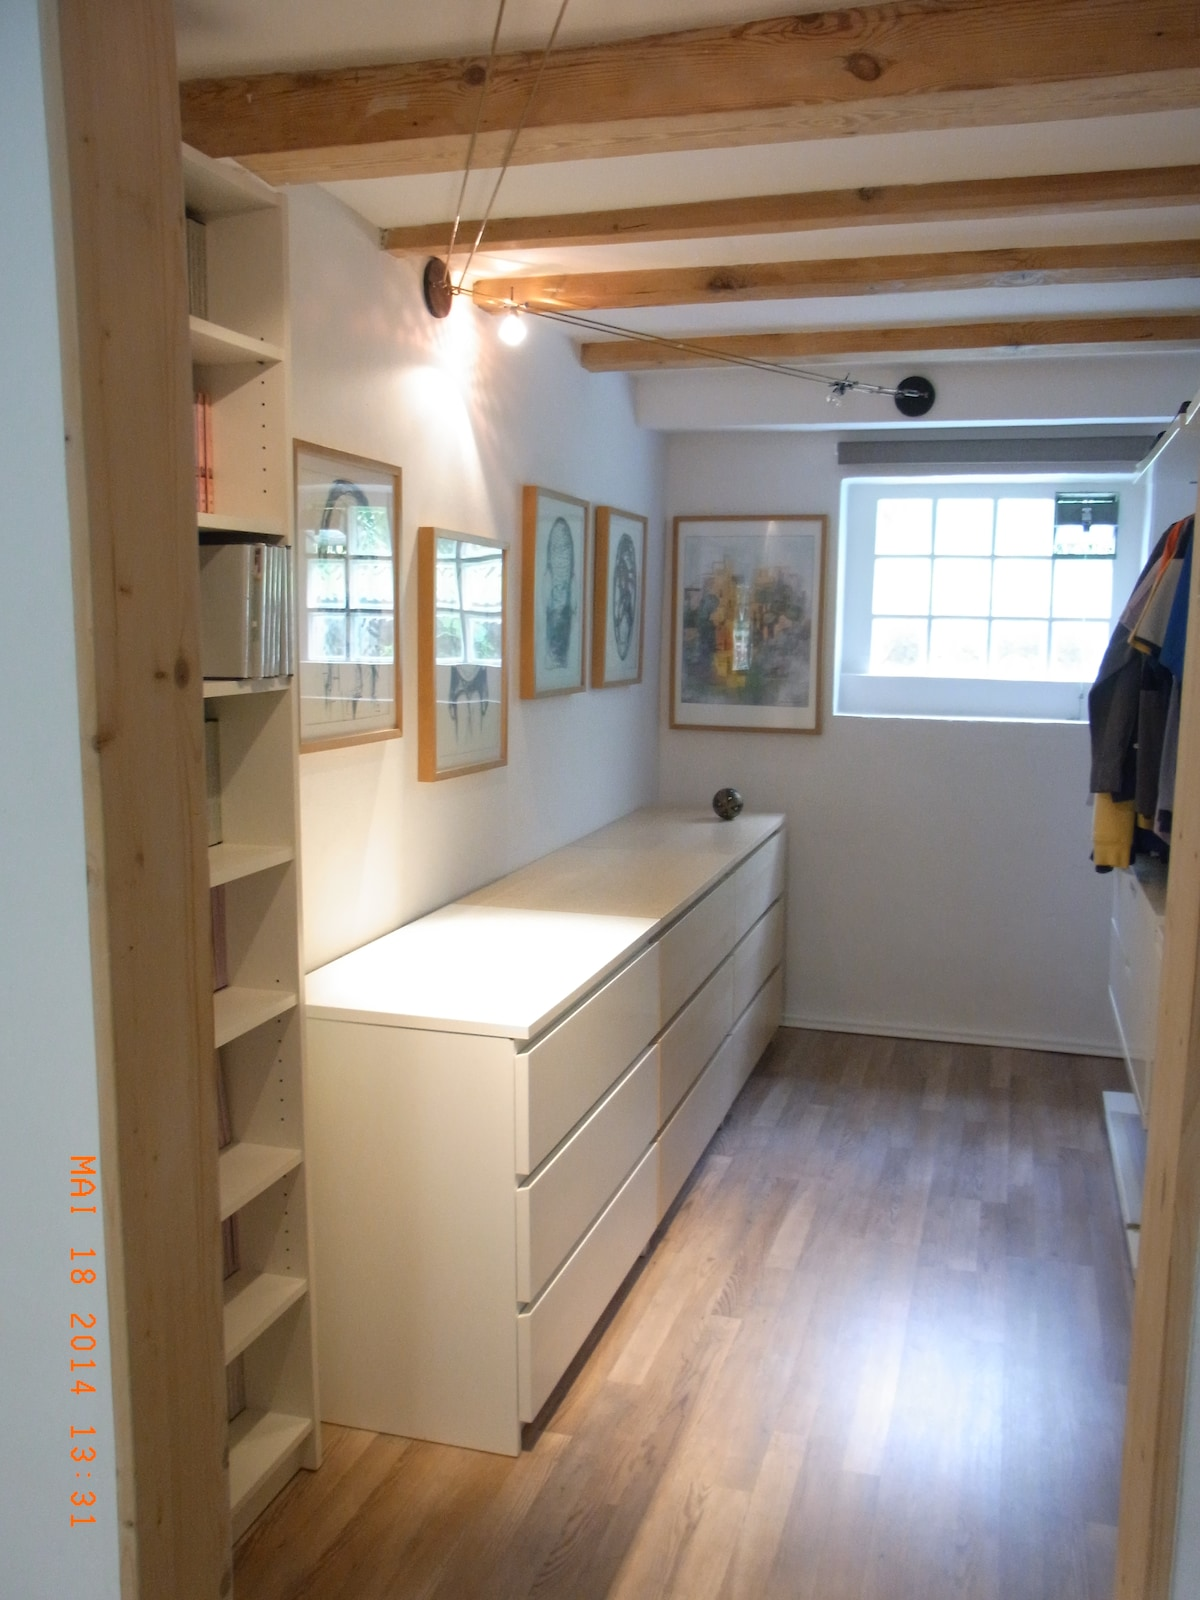 wardrobe room - enough space for your luggage and clothing.